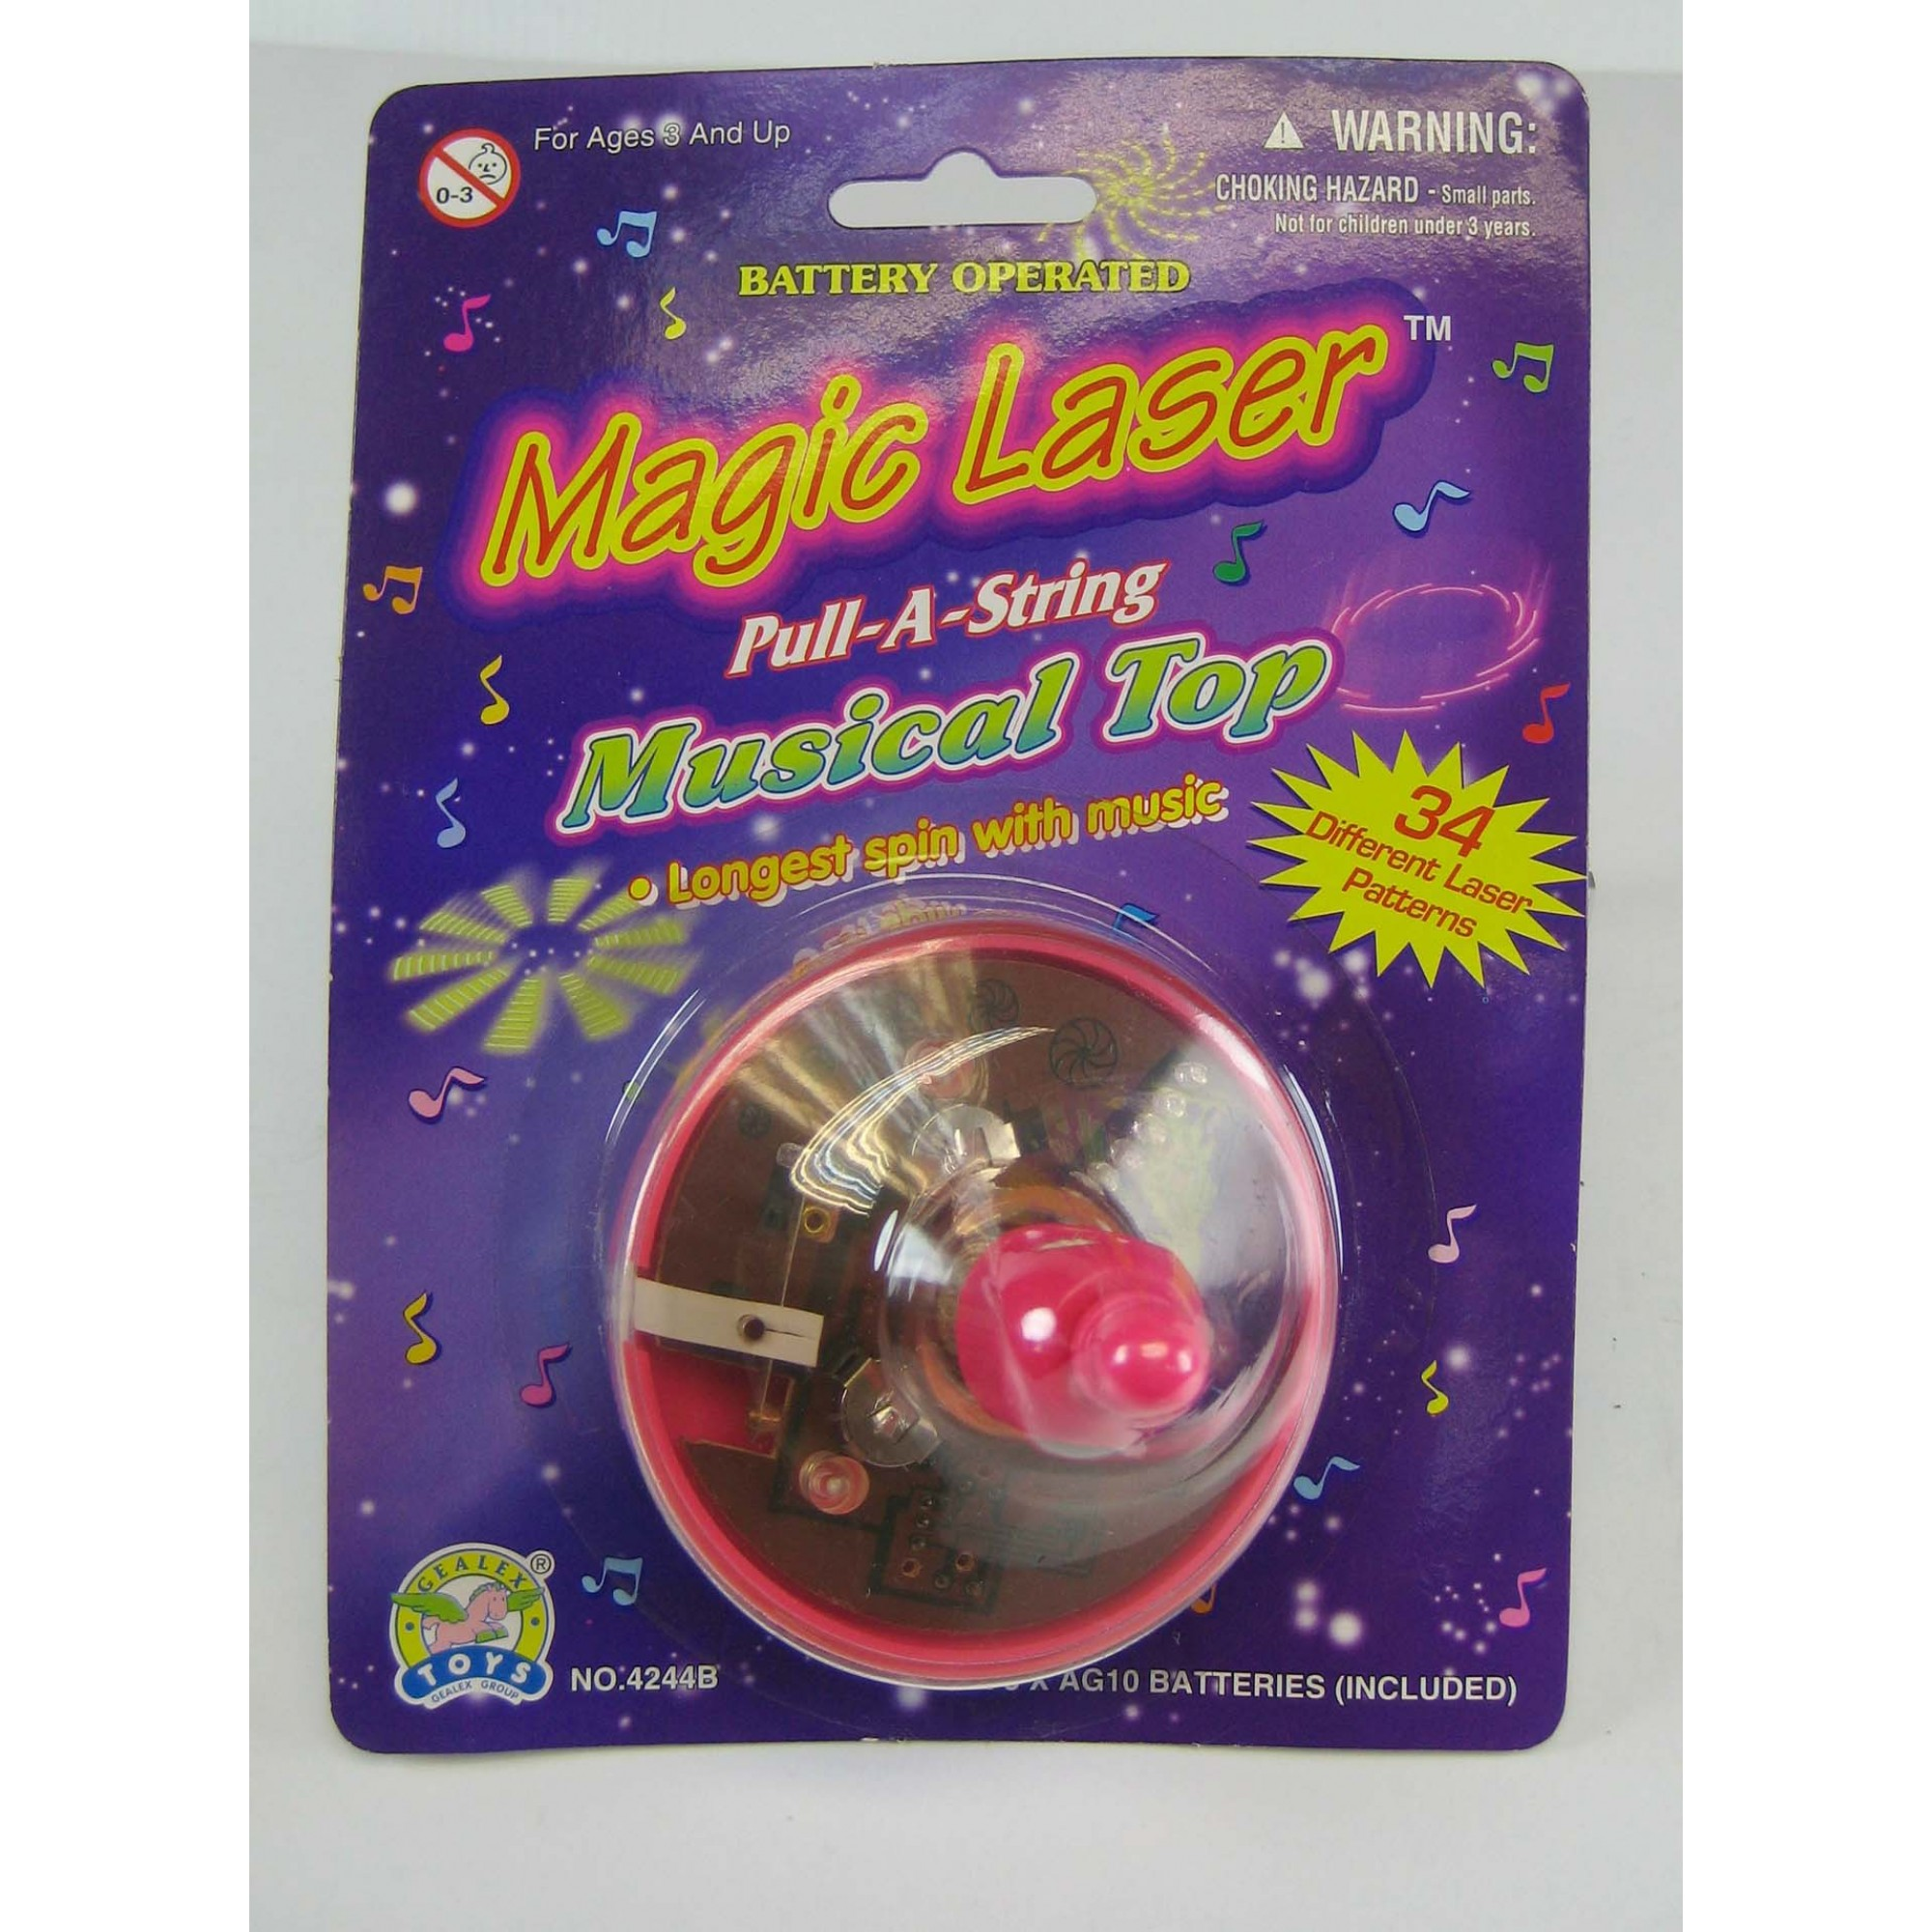 Musical Laser Pull-A String Spinner